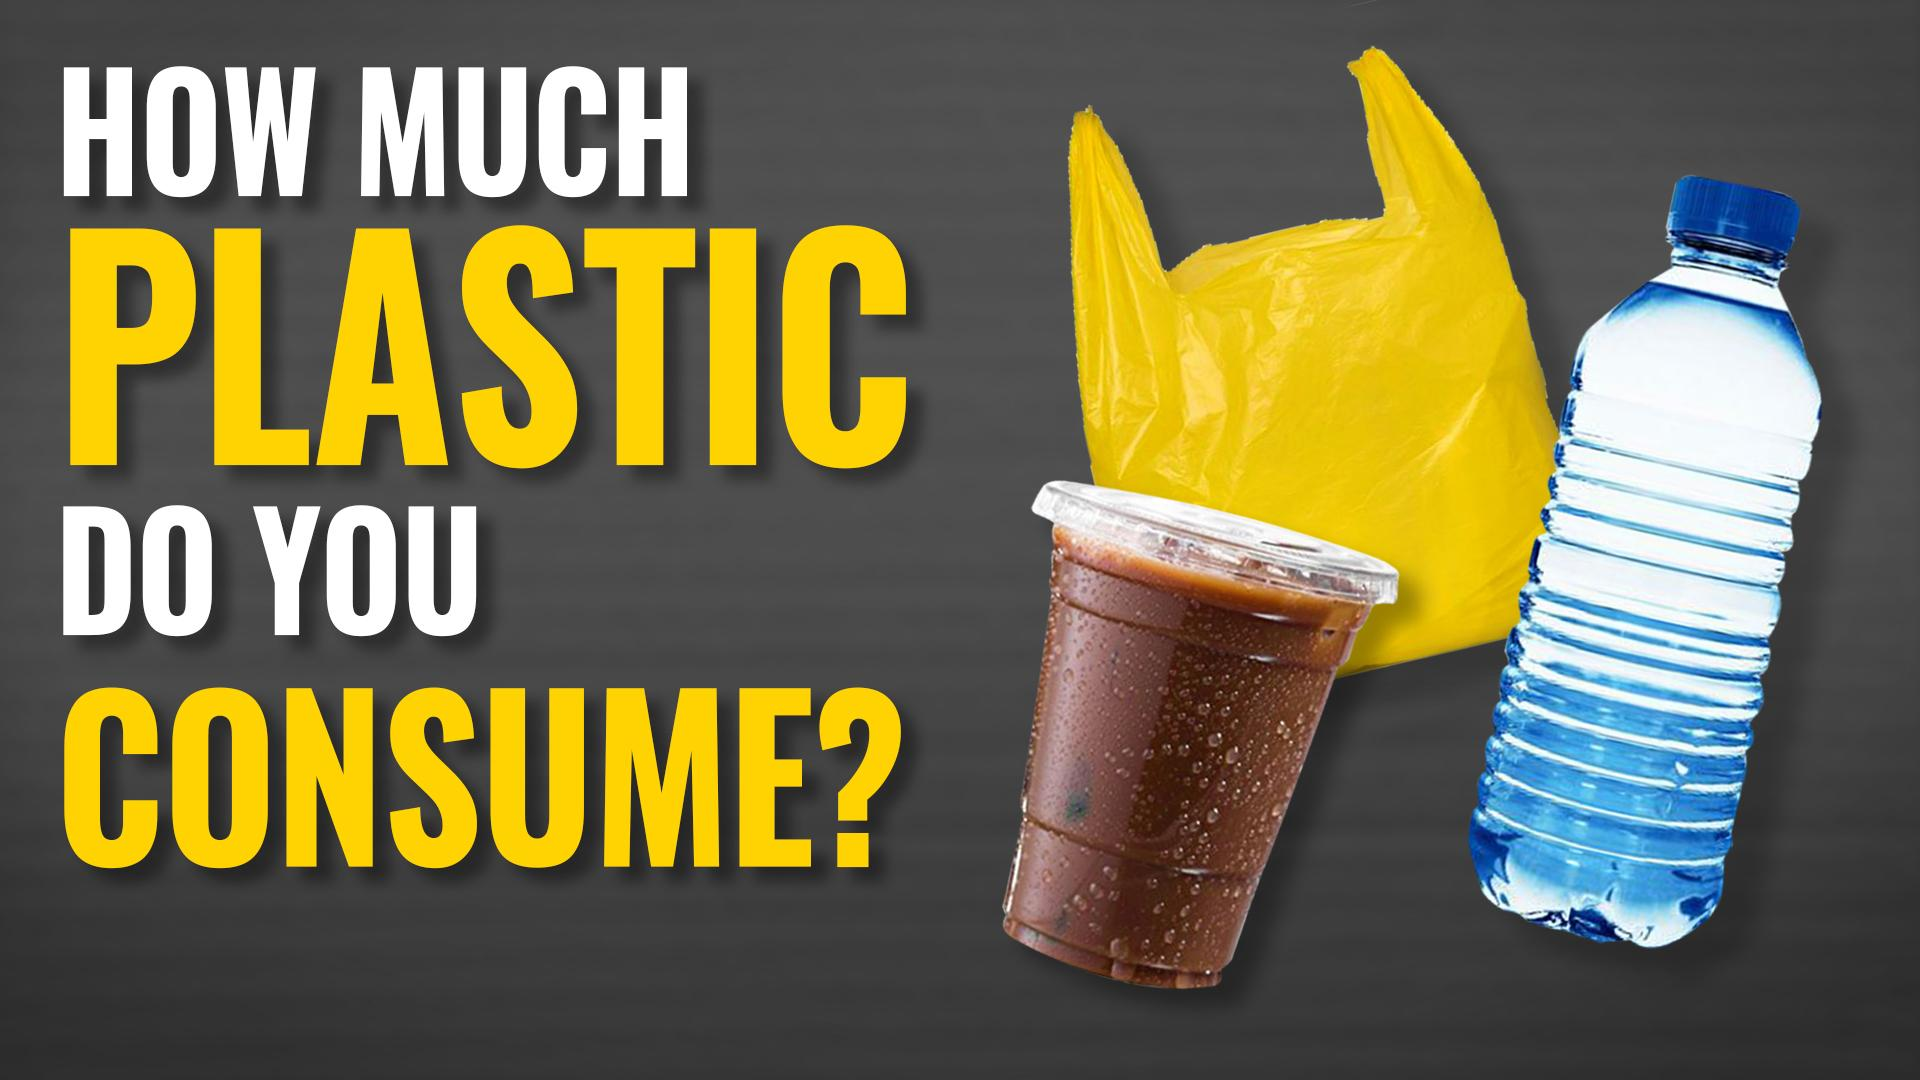 How Much Plastic Do You Consume?